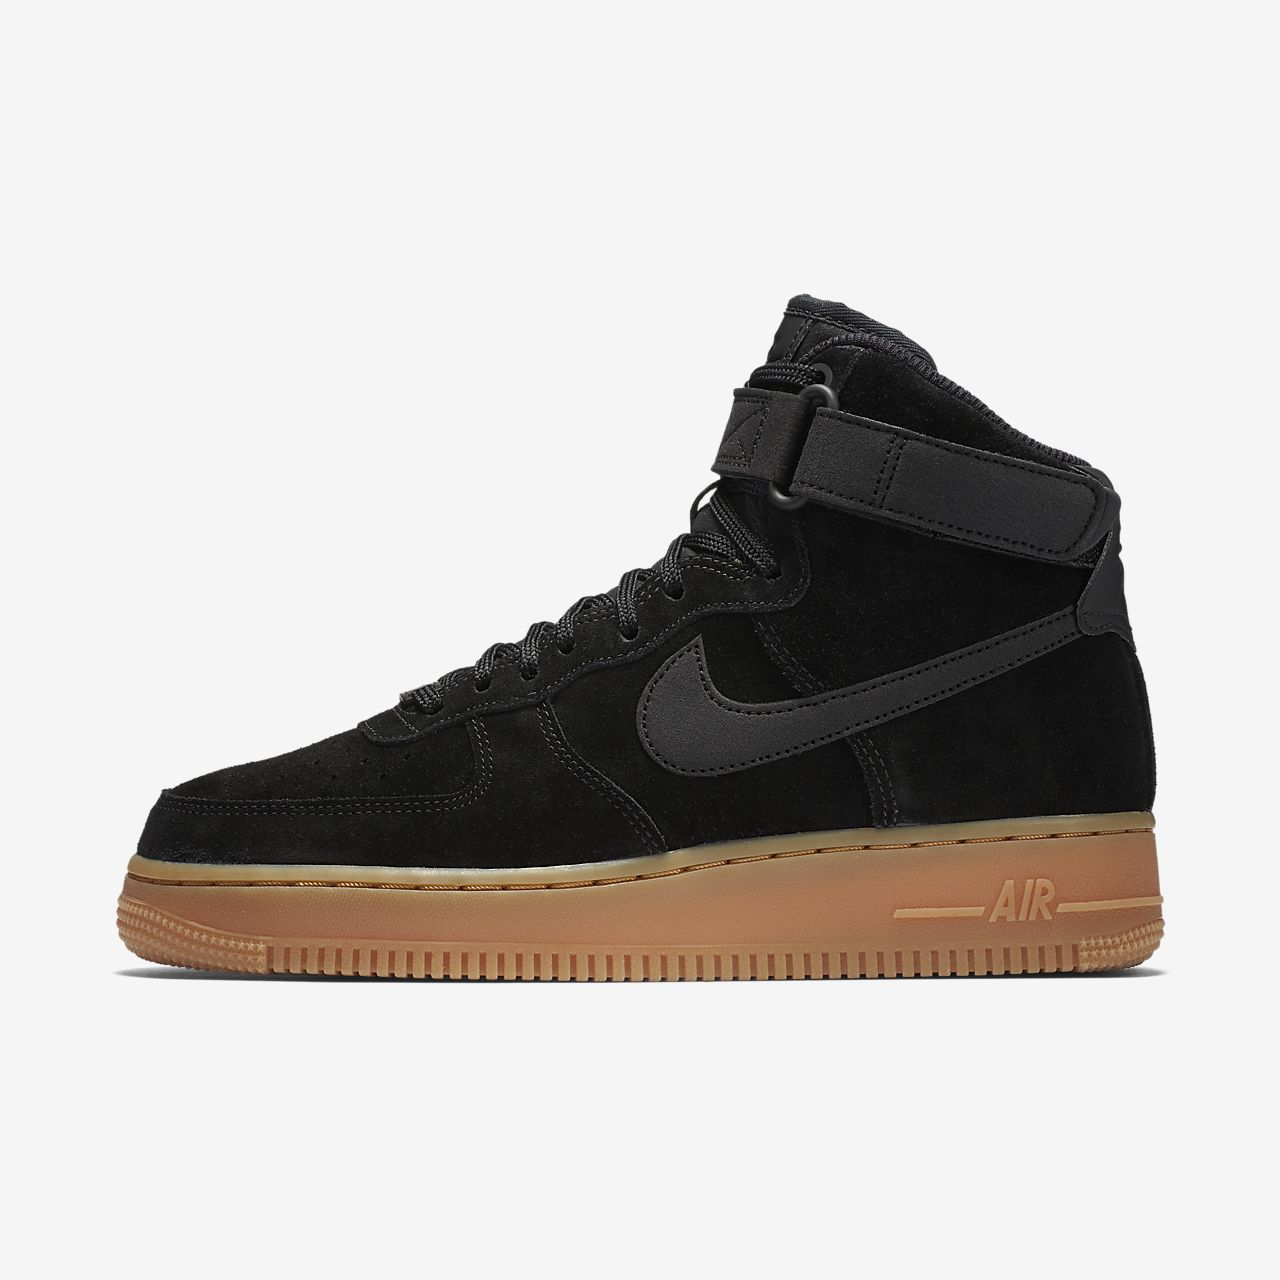 nike air force 1 strap nz